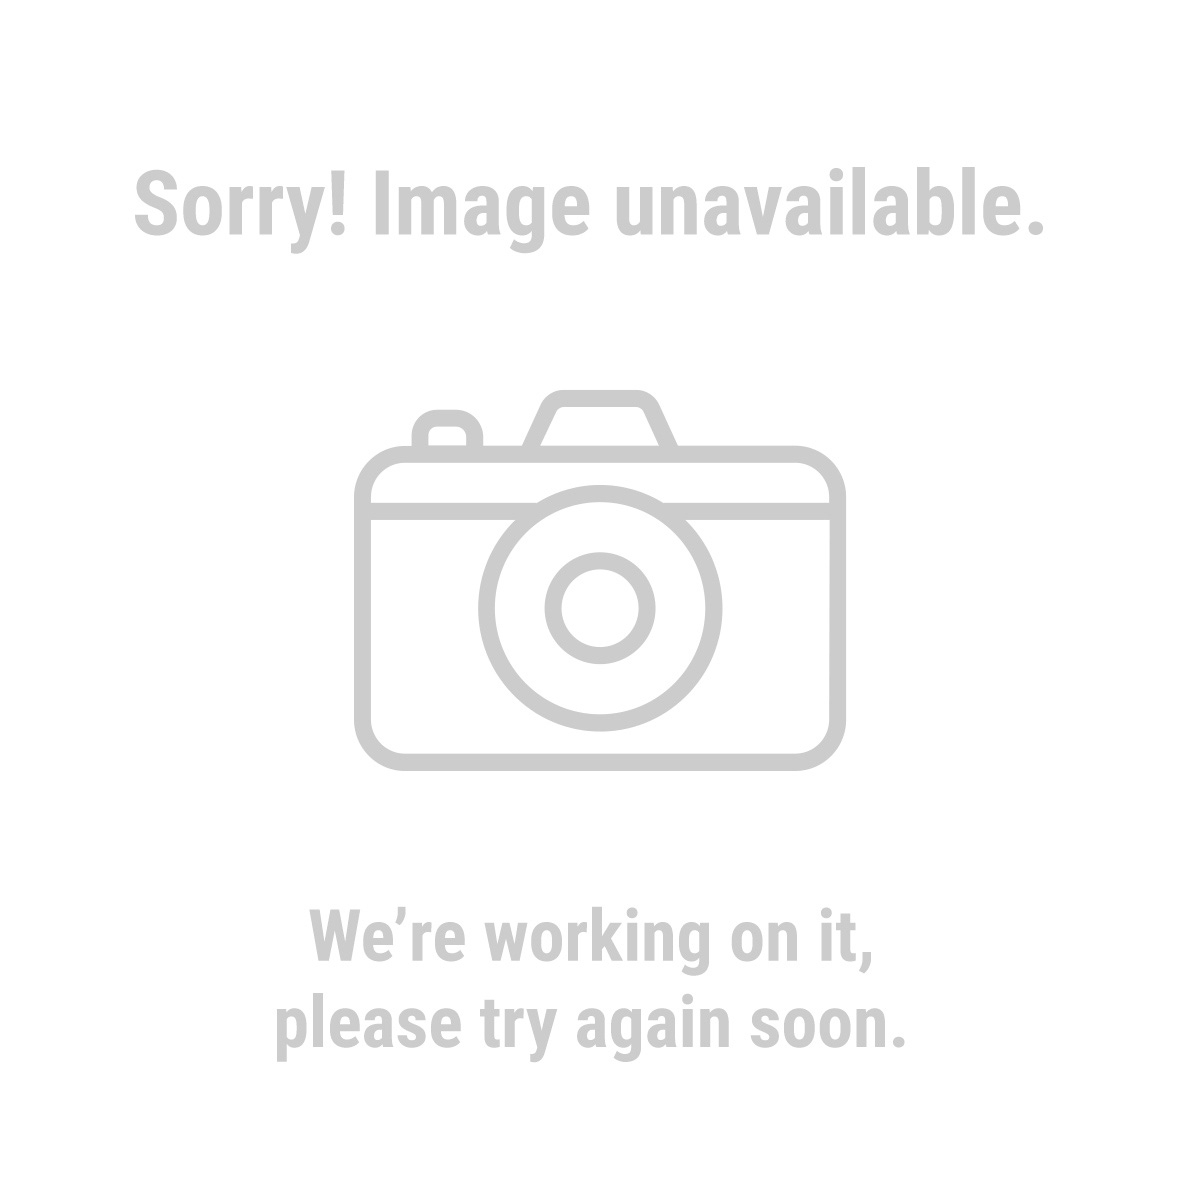 DAP 46916 Clear Silicone Sealant